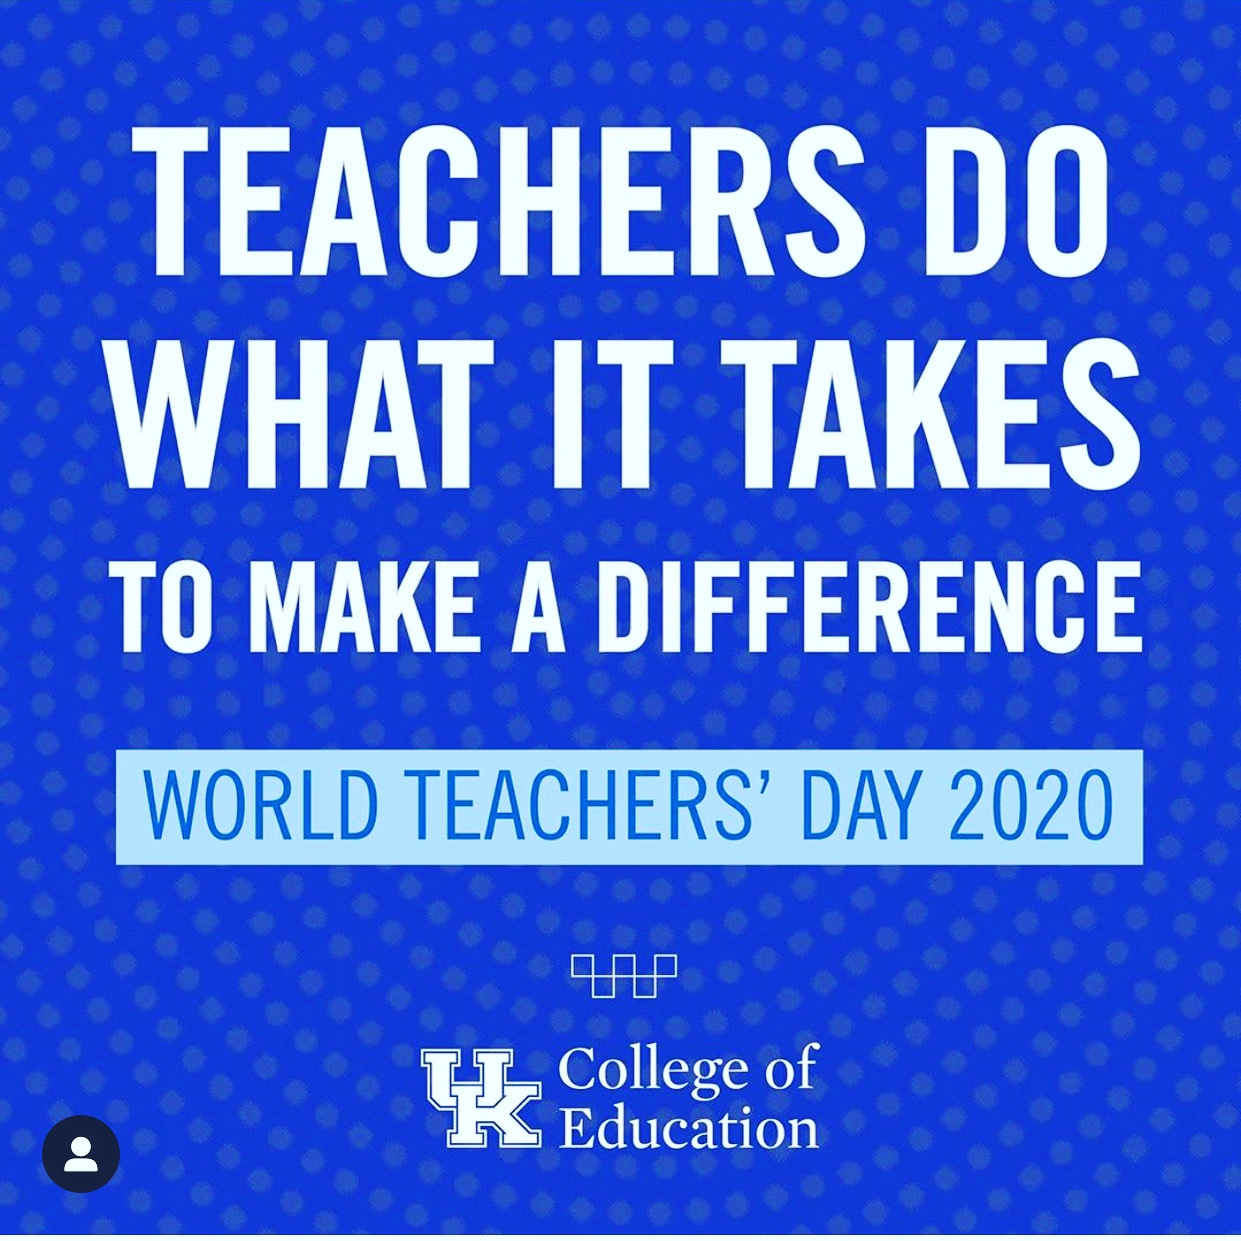 Thank you educators! #WorldTeachersDay